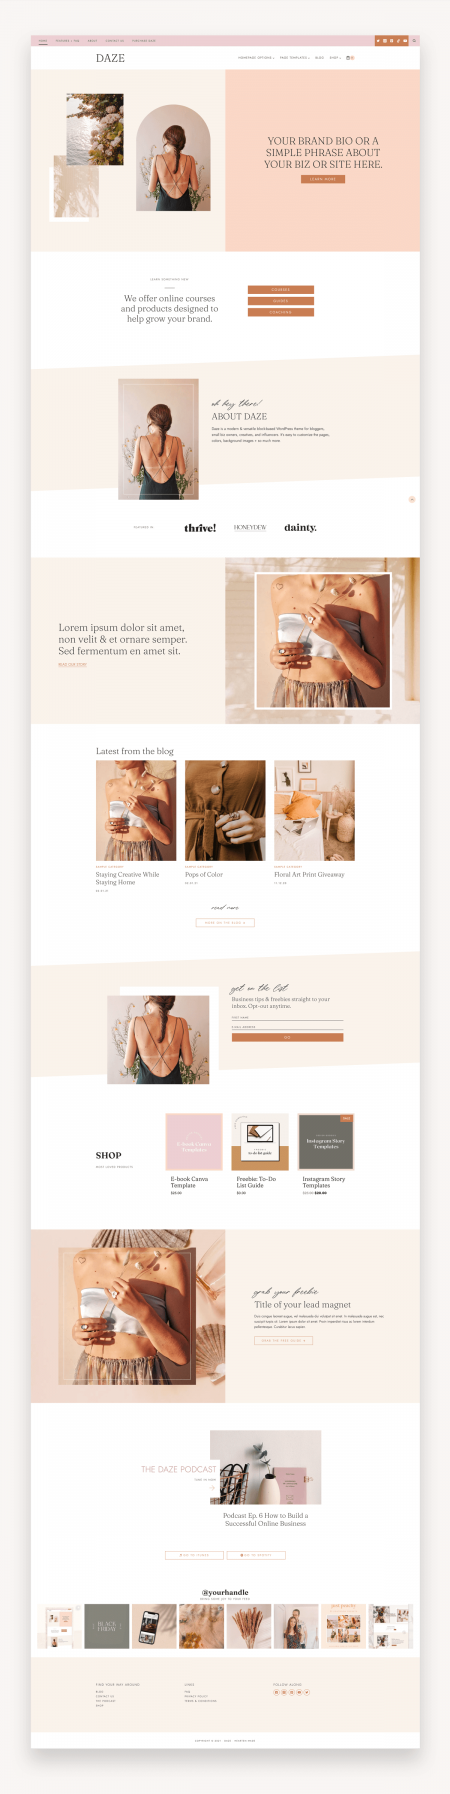 Daze Coaching WordPress Theme